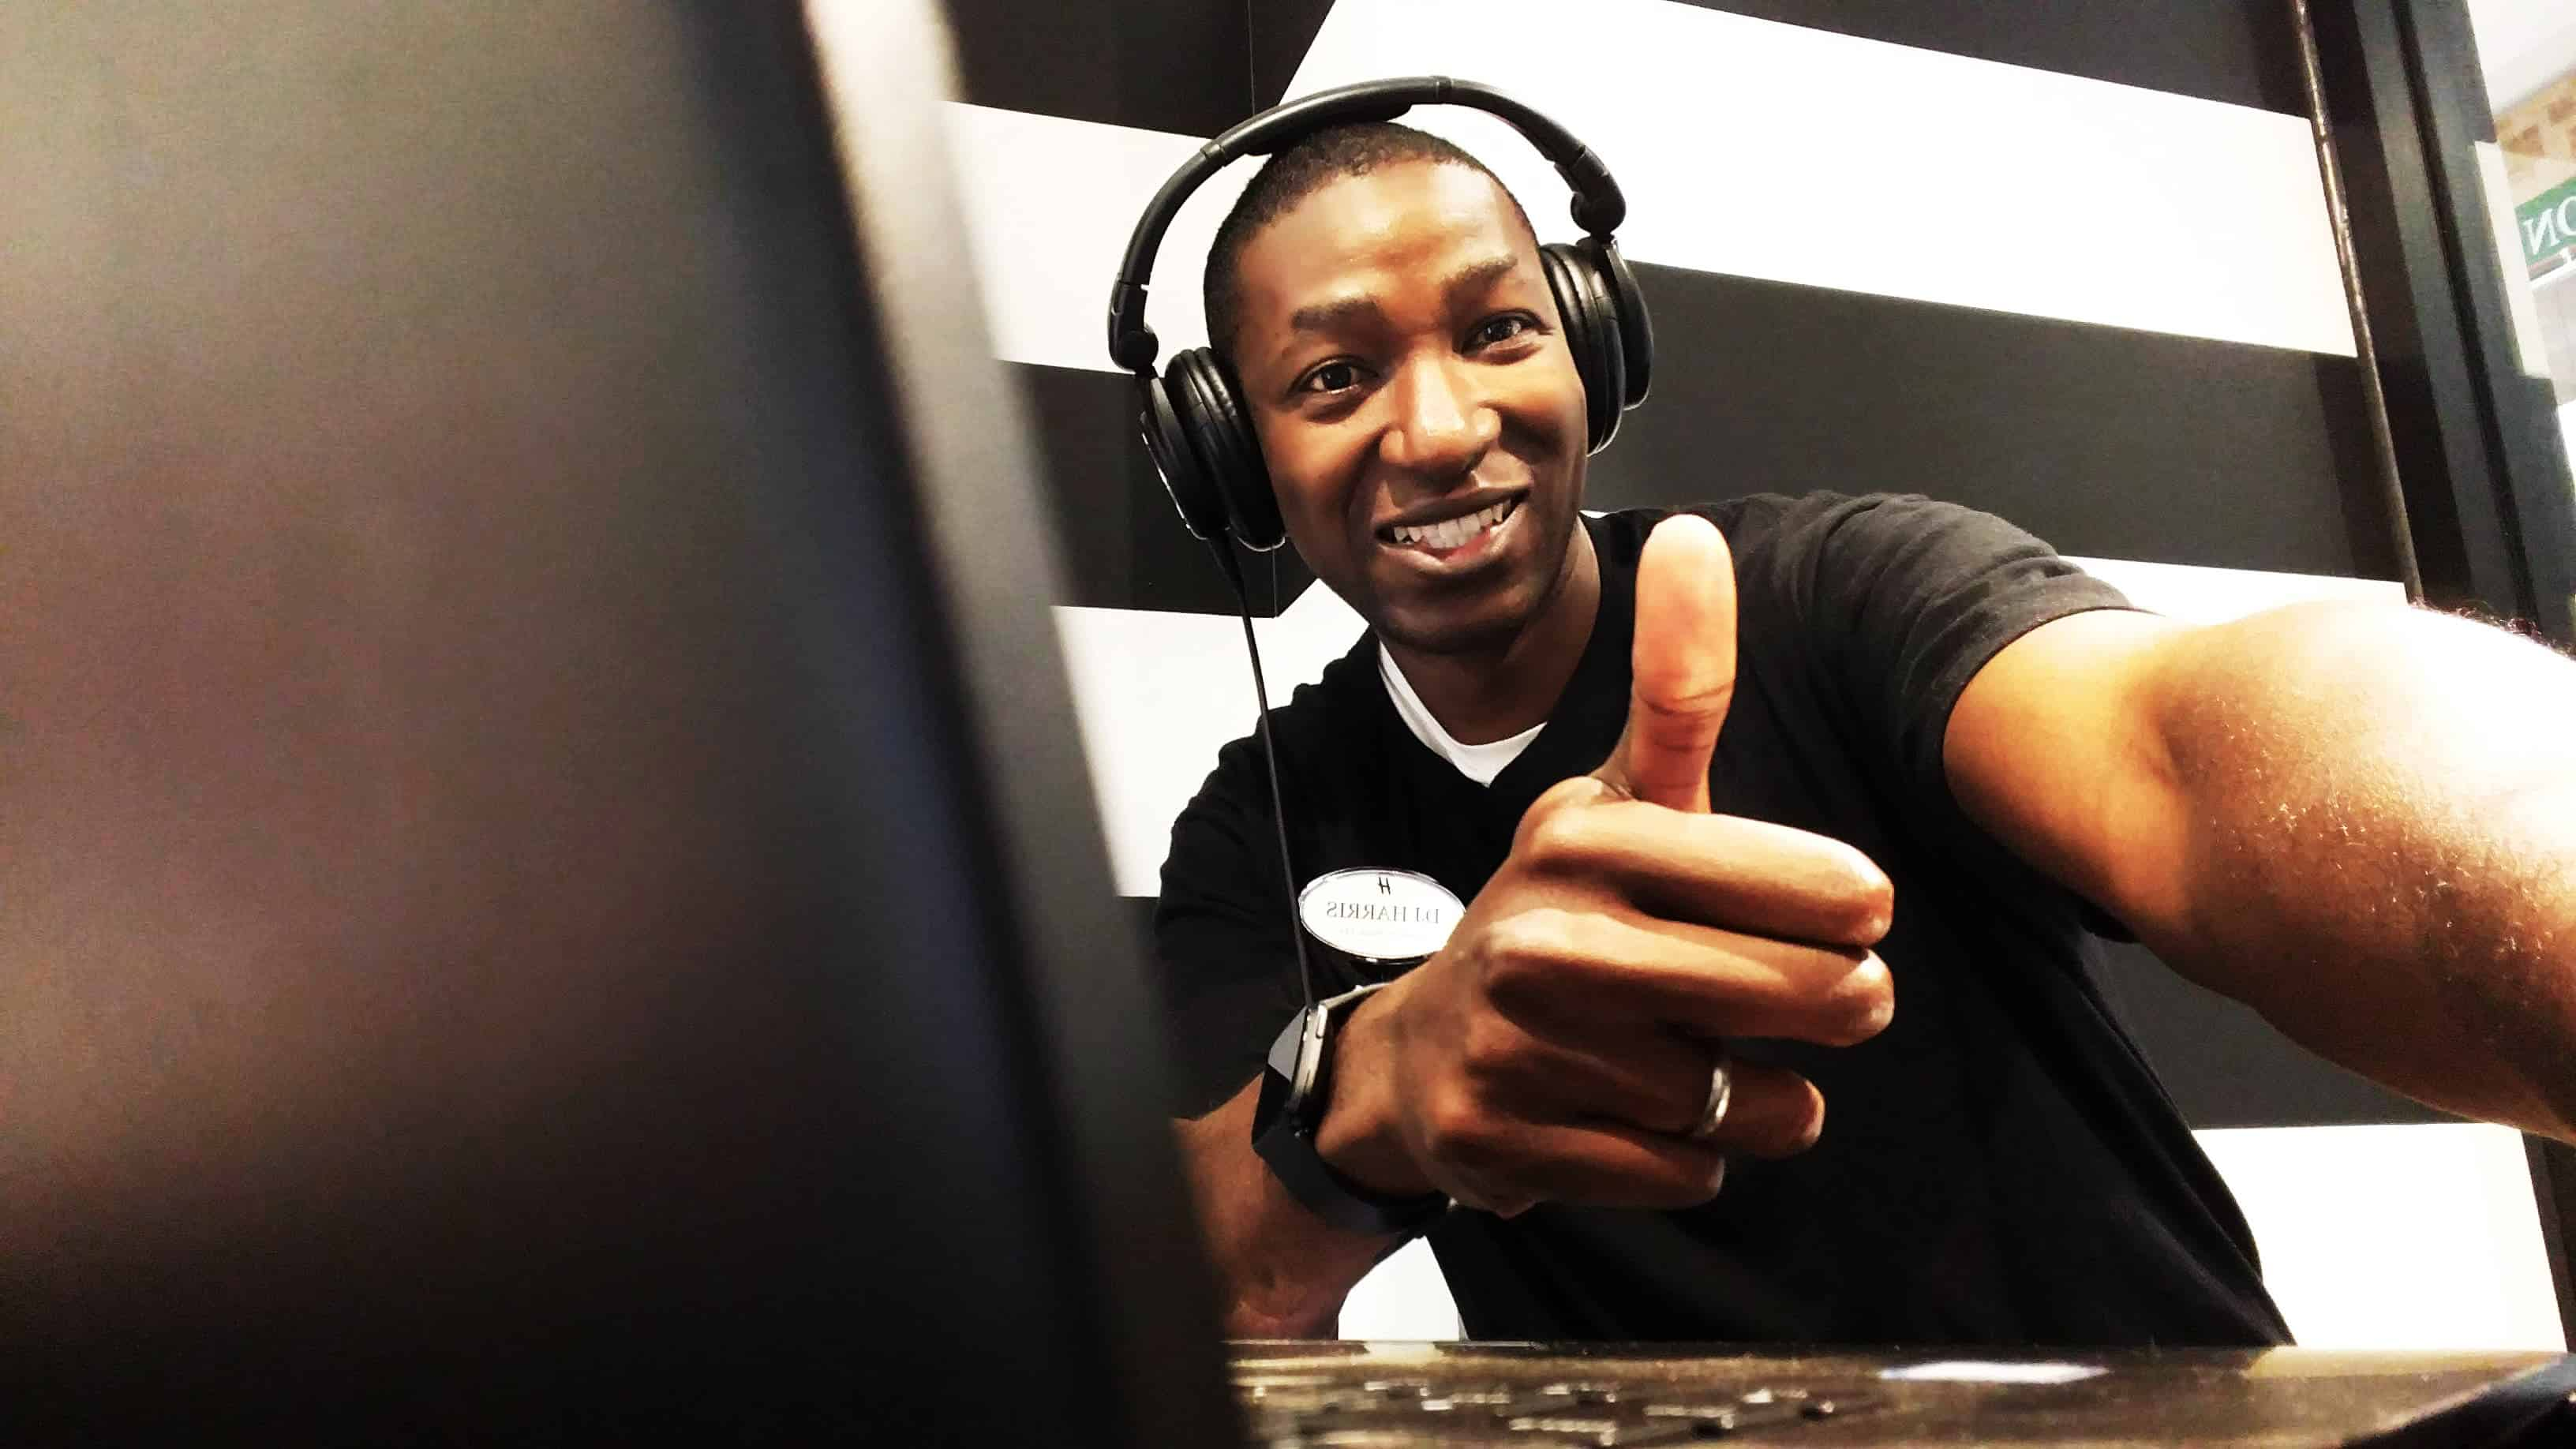 An image of DJ Harris giving a thumbs up to the camera as he is mixing jamming out during a DJ session in Sephora for a Too Faced Comsetics Party